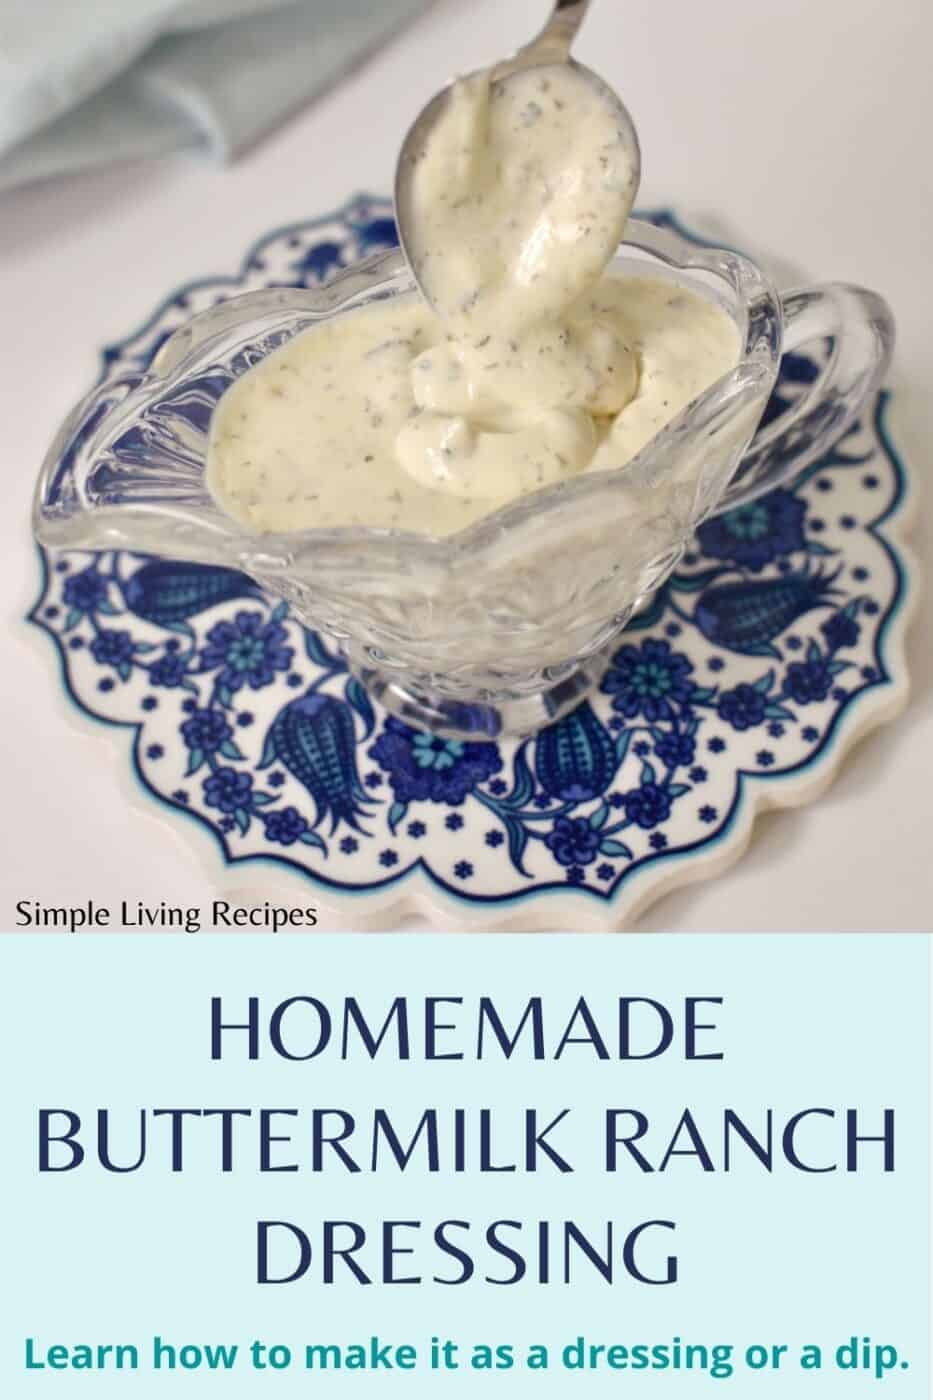 Homamede Buttermilk Ranch dressing in a sauce boat with a spoon